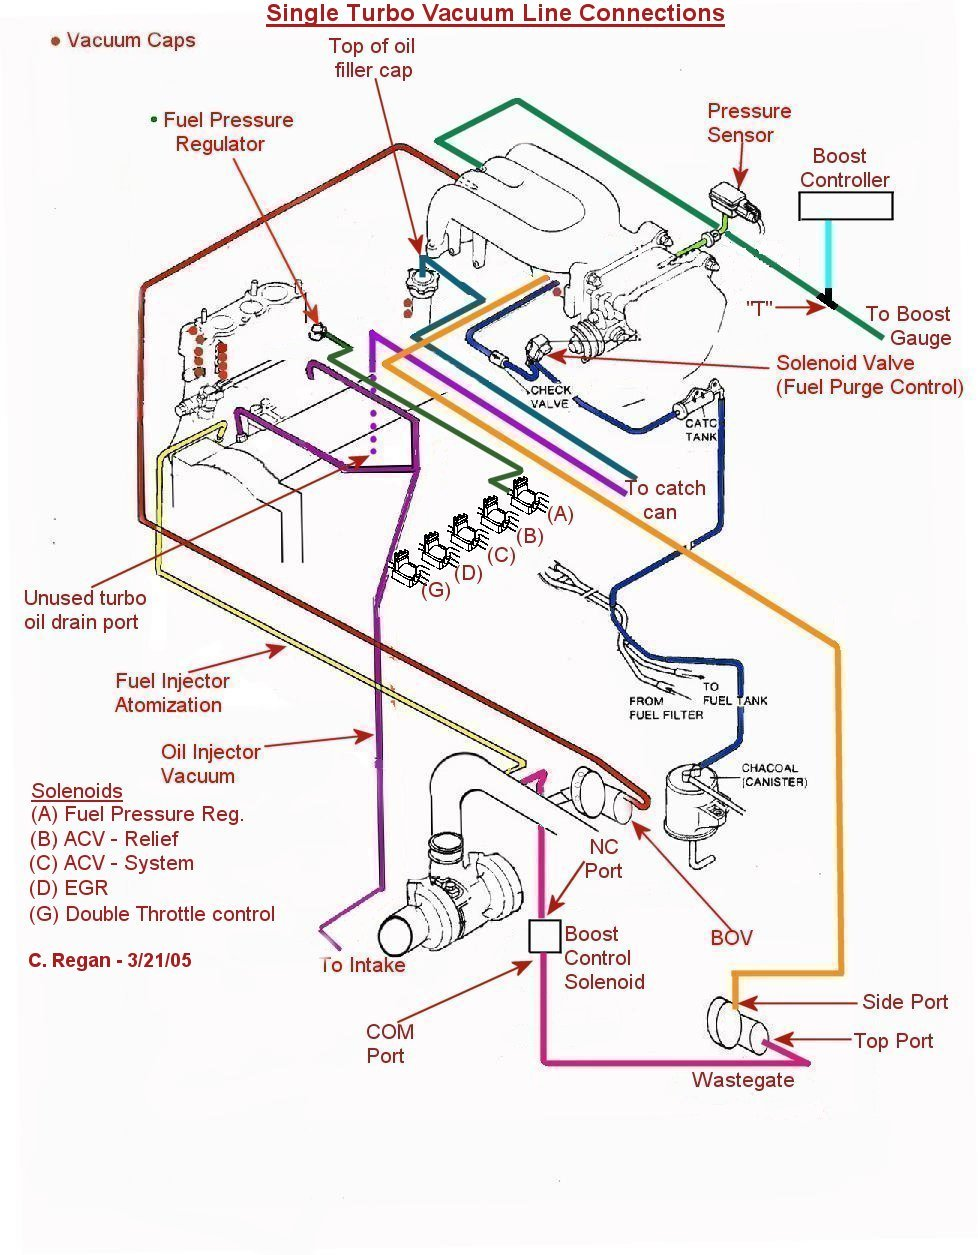 Citroen Vacuum Diagram Wiring. Main Page Rotary Engine Wiki 95 Civic Vacuum Diagram Citroen. Mazda. 1986 Mazda B2000 Engine Diagram Vacuum At Scoala.co